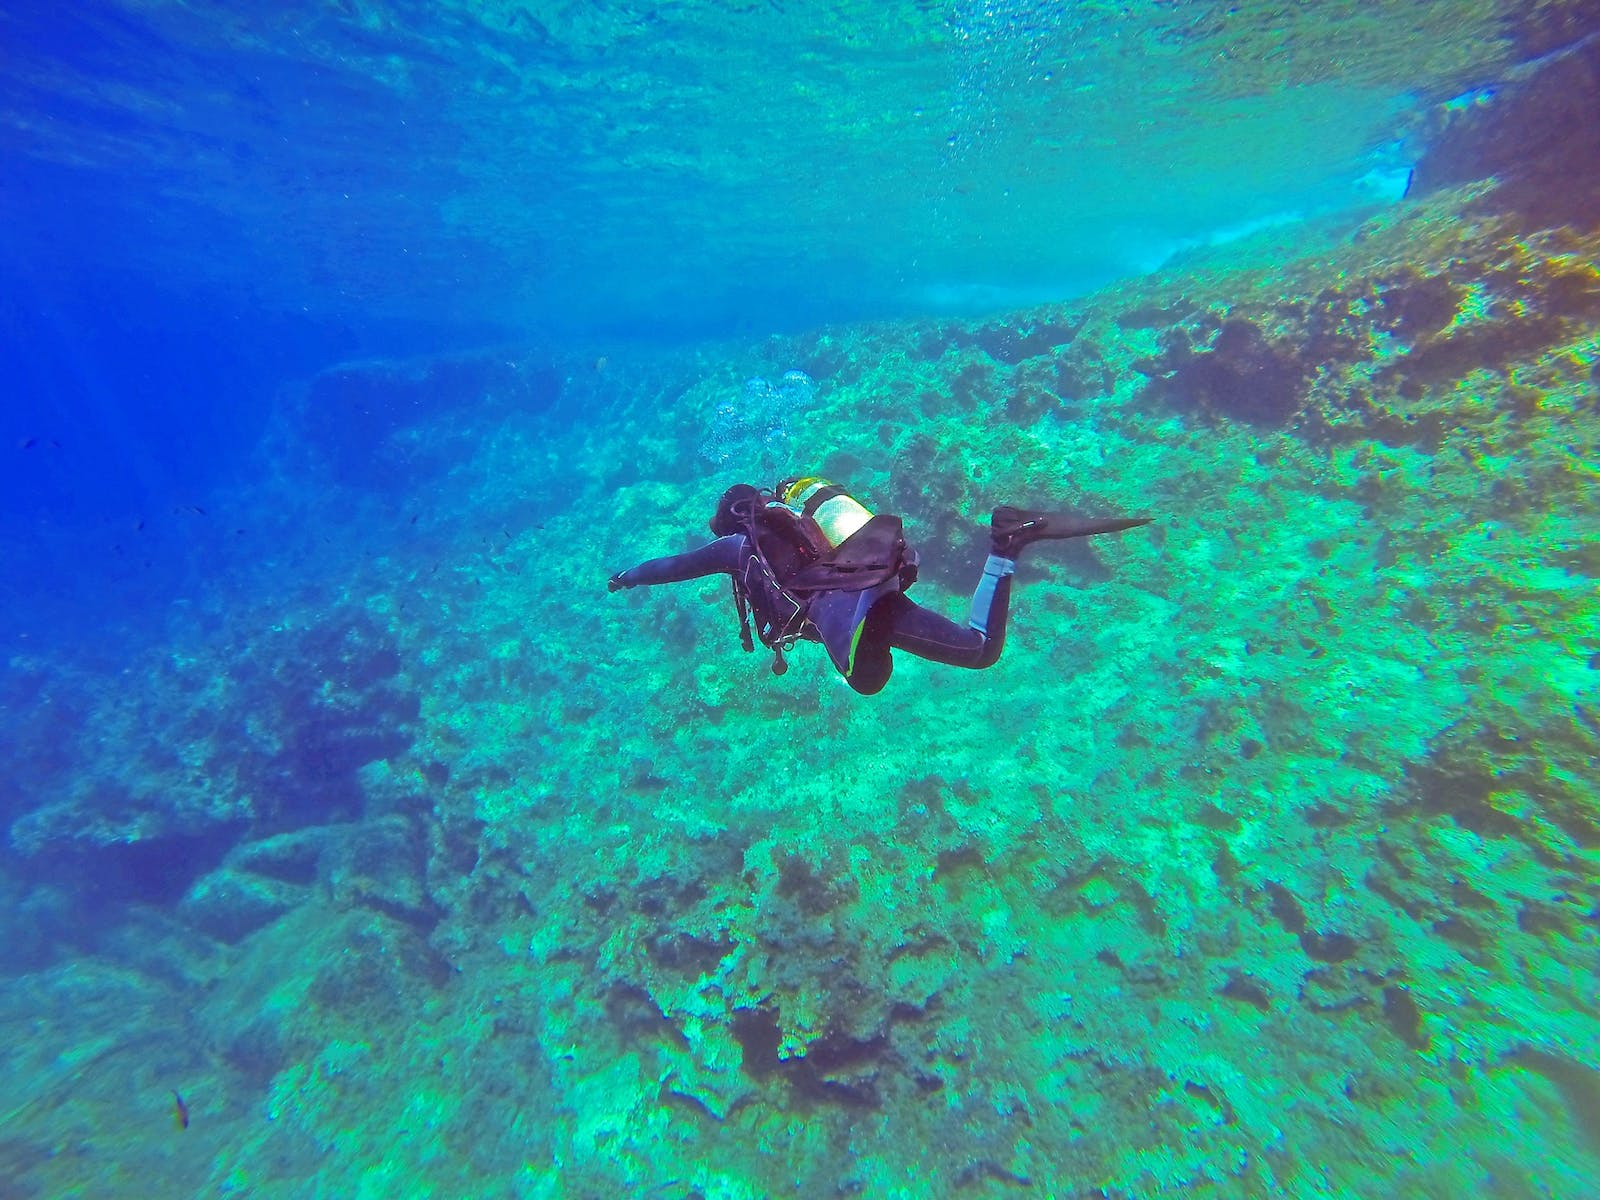 Scuba diver swimming through the water